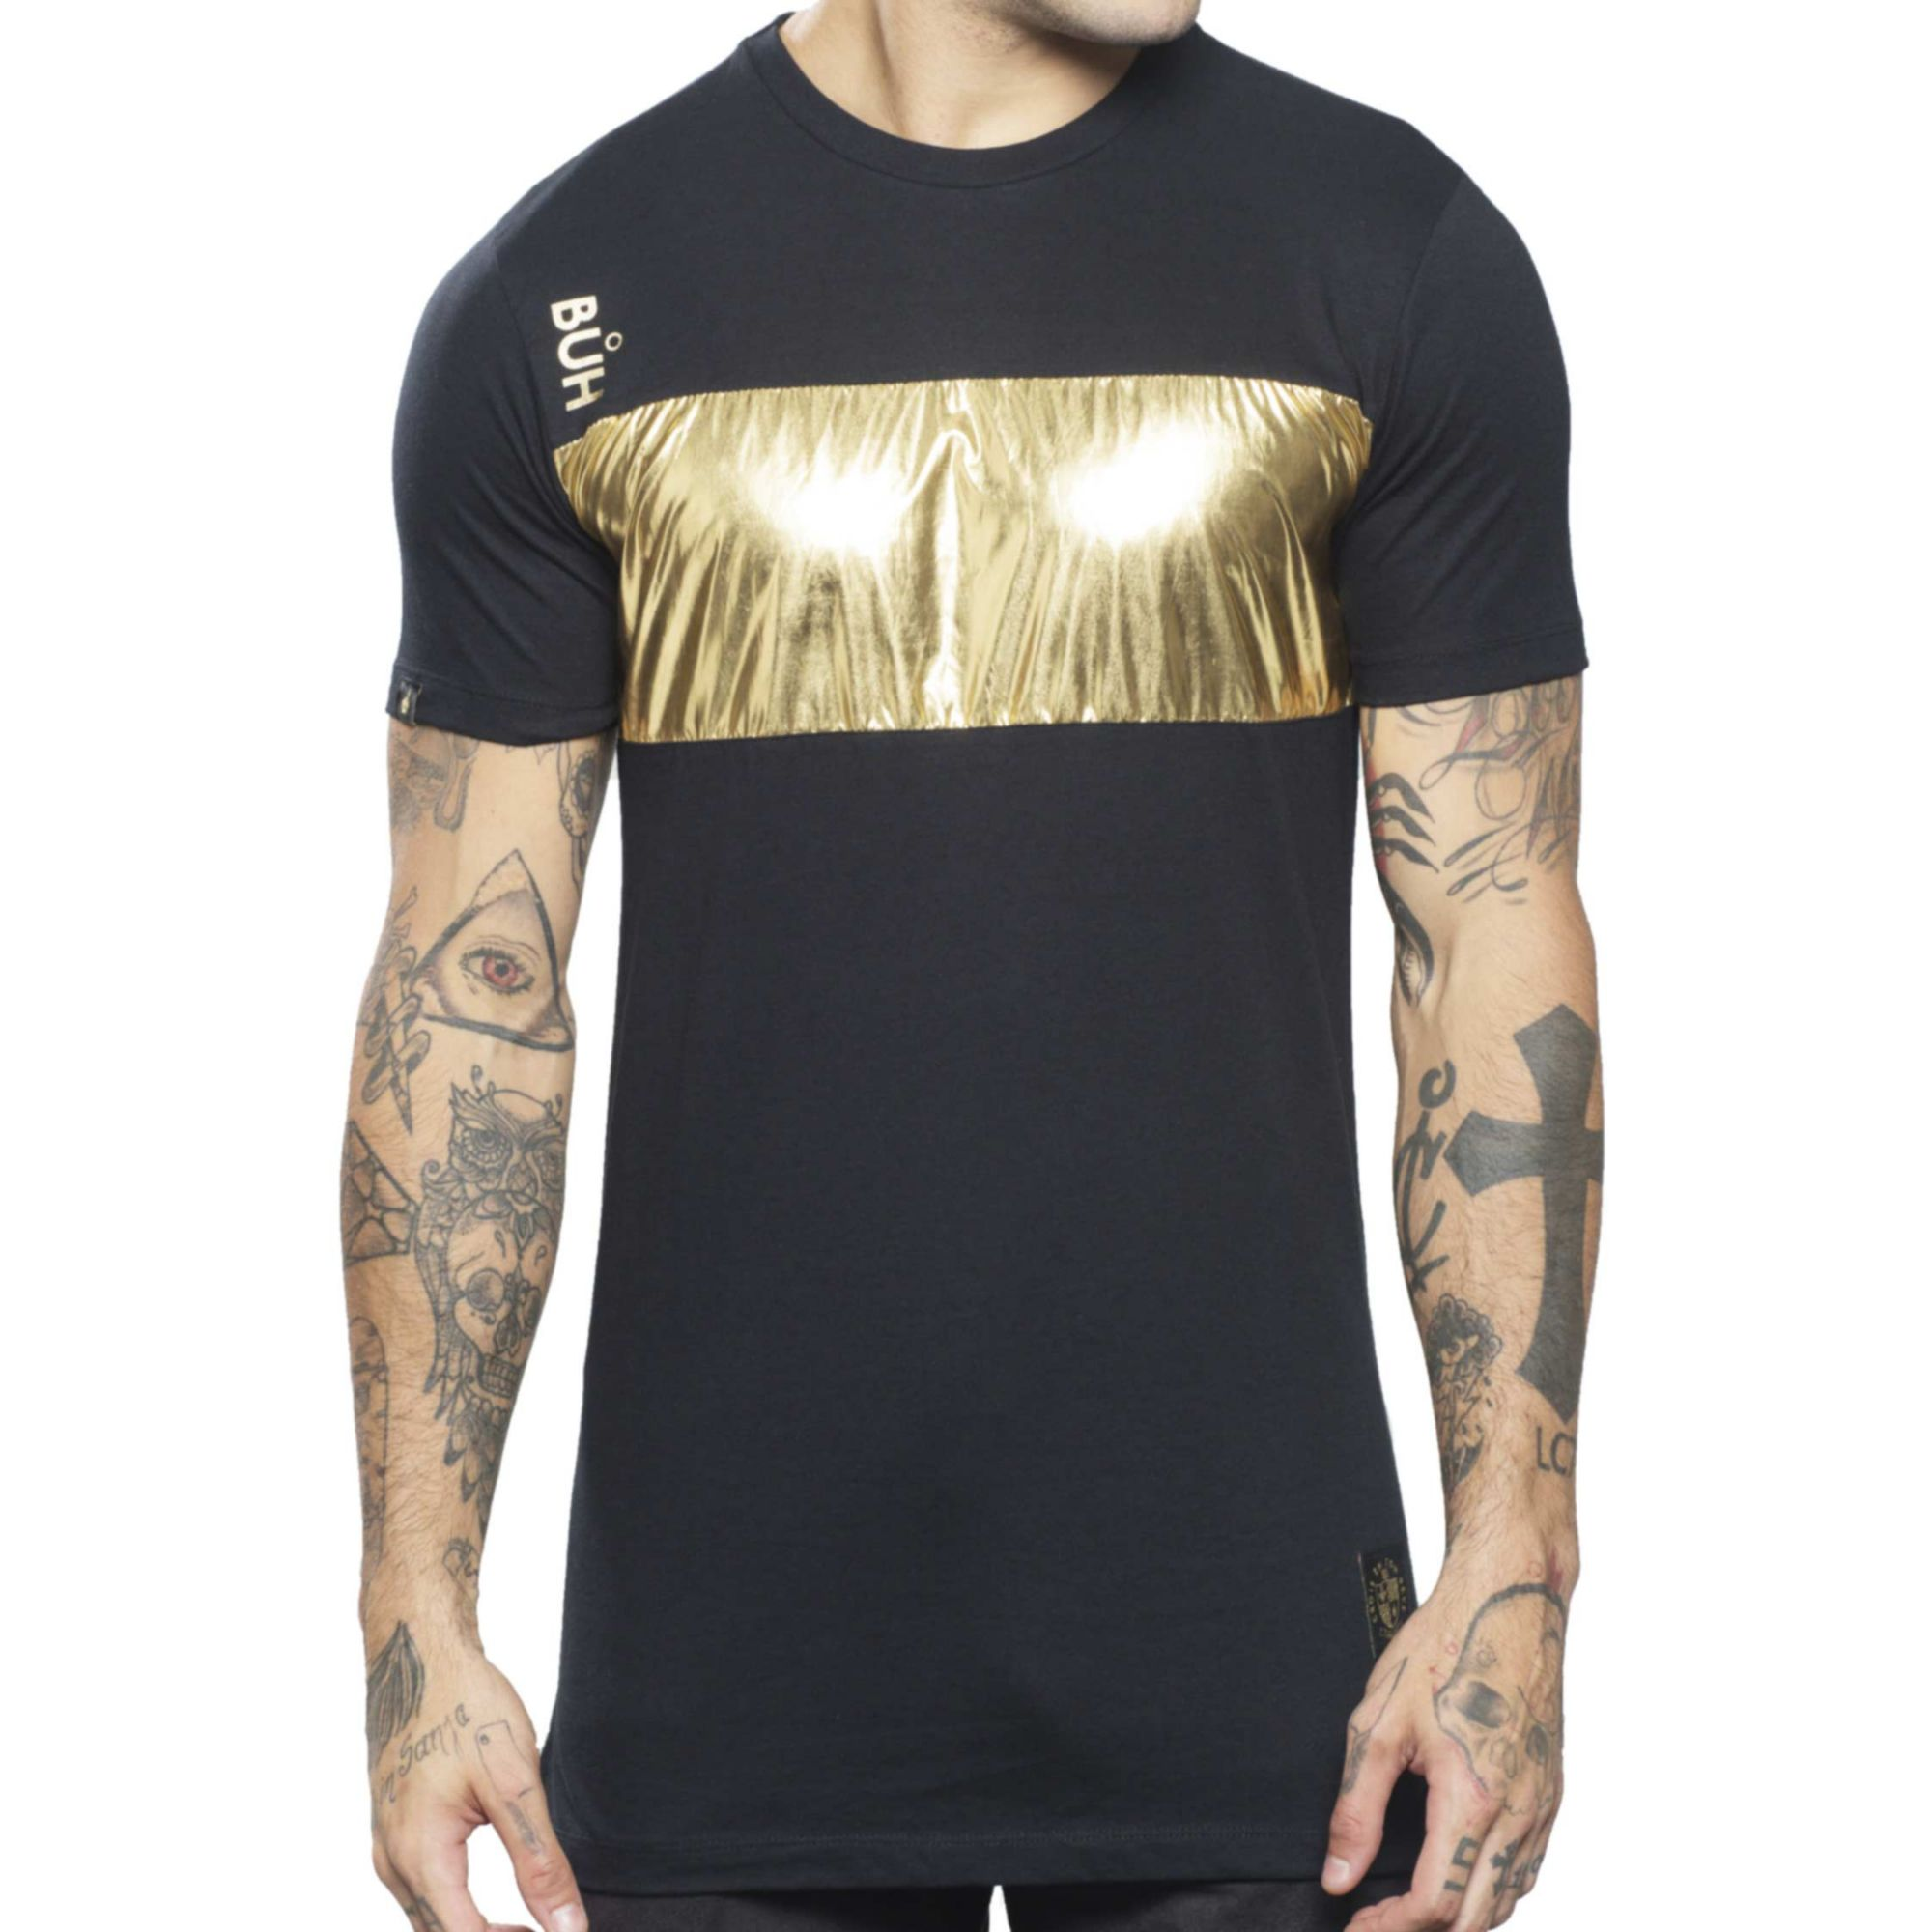 Camiseta Buh Metal Gold & Black